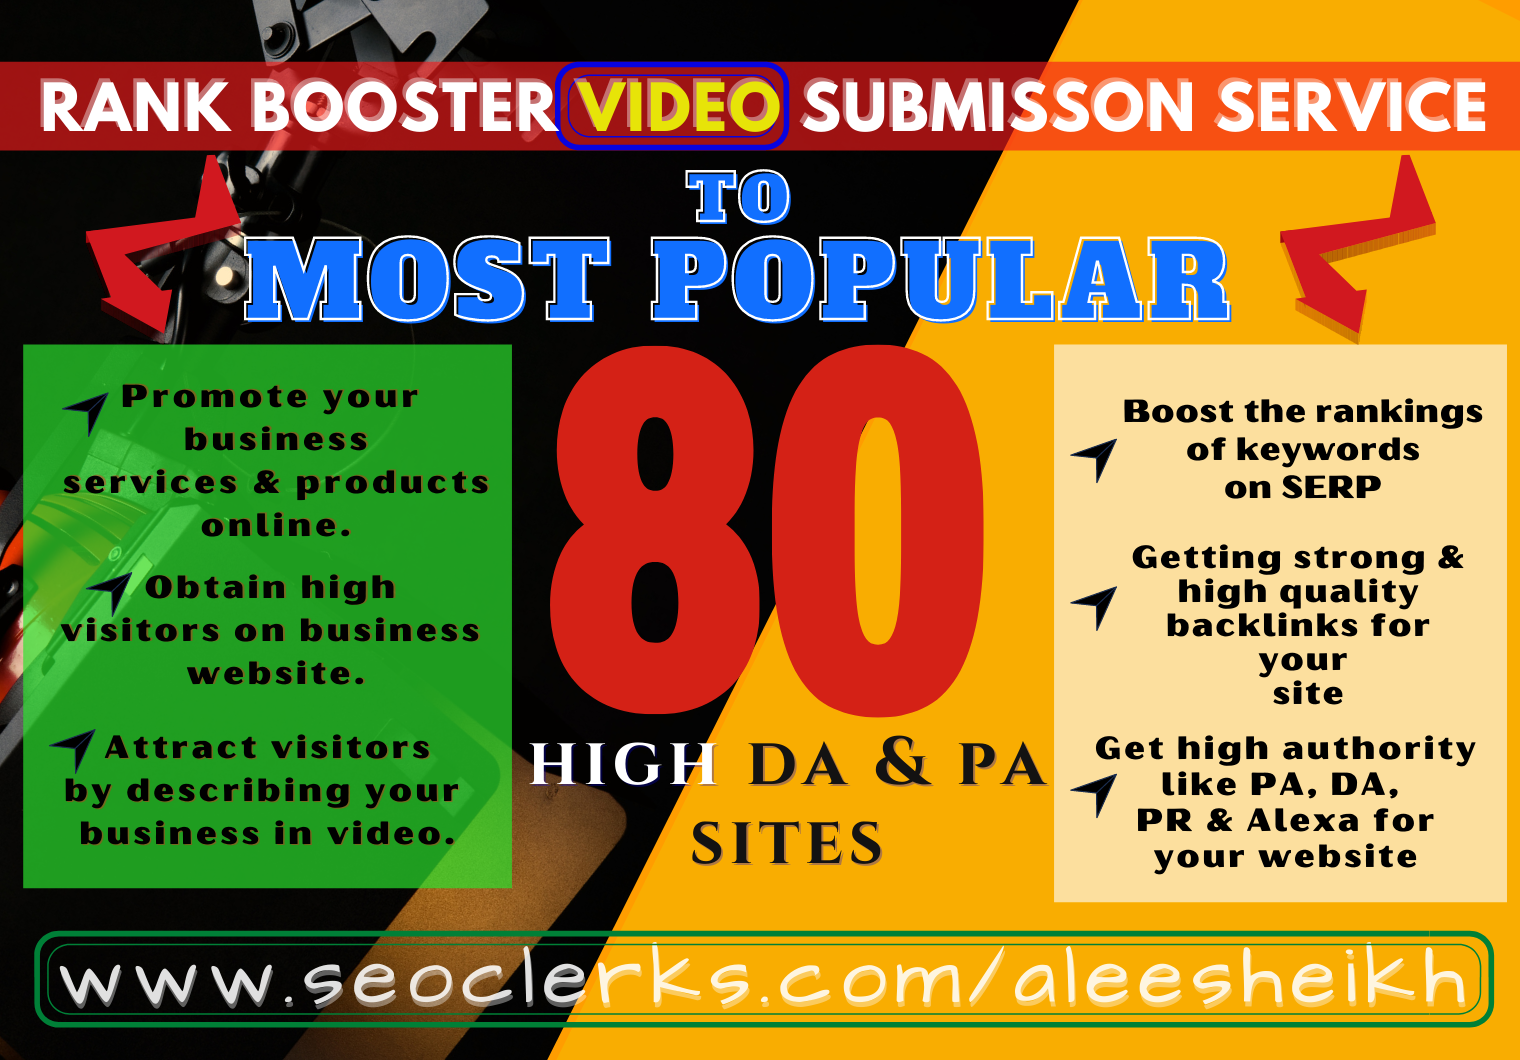 Manual video submission to 80 high DA & PA video sharing sites